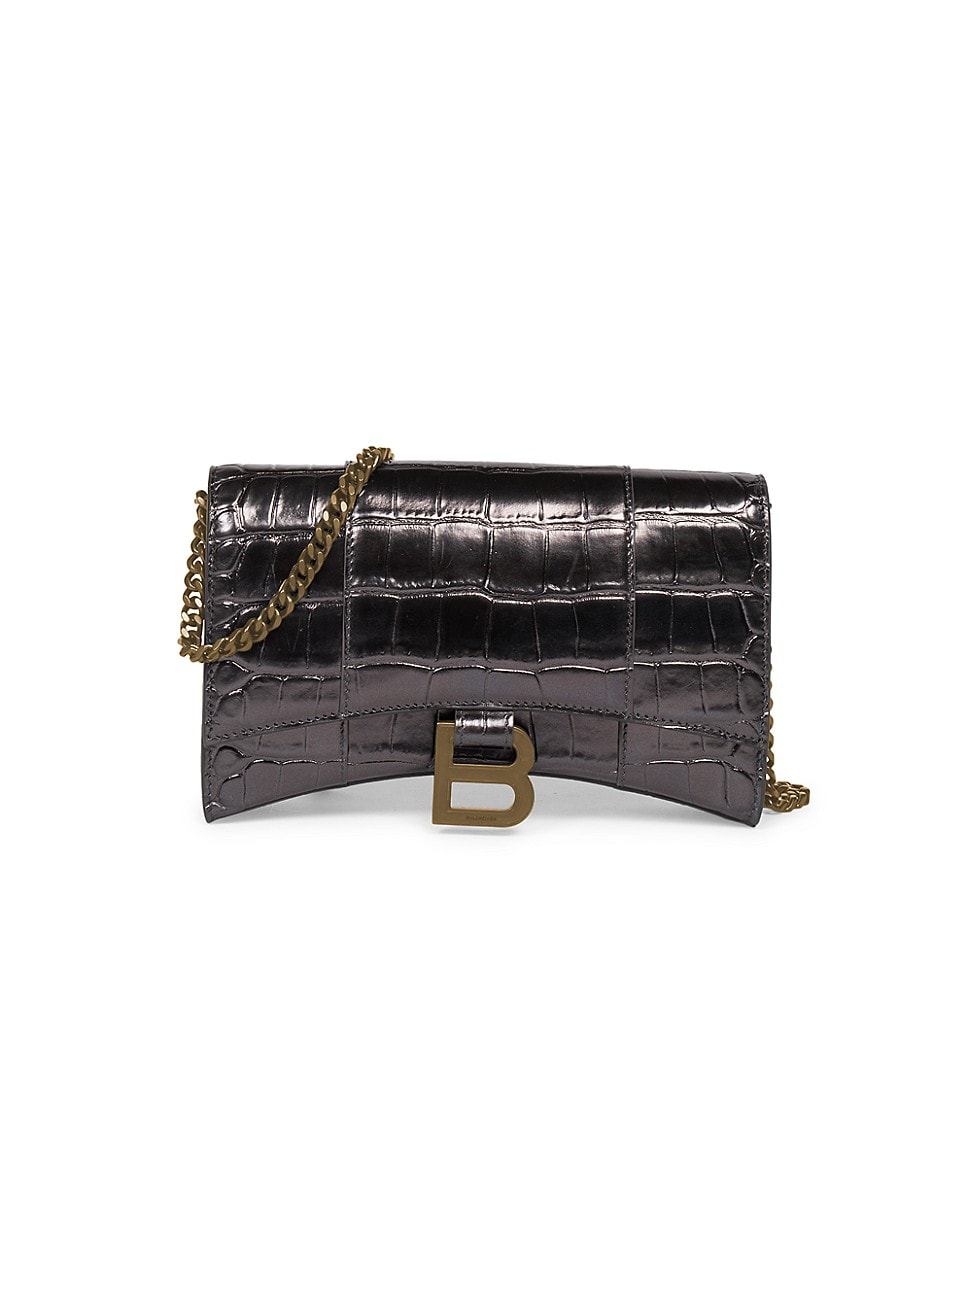 Balenciaga Wallets WOMEN'S HOURGLASS CROC-EMBOSSED LEATHER WALLET-ON-CHAIN